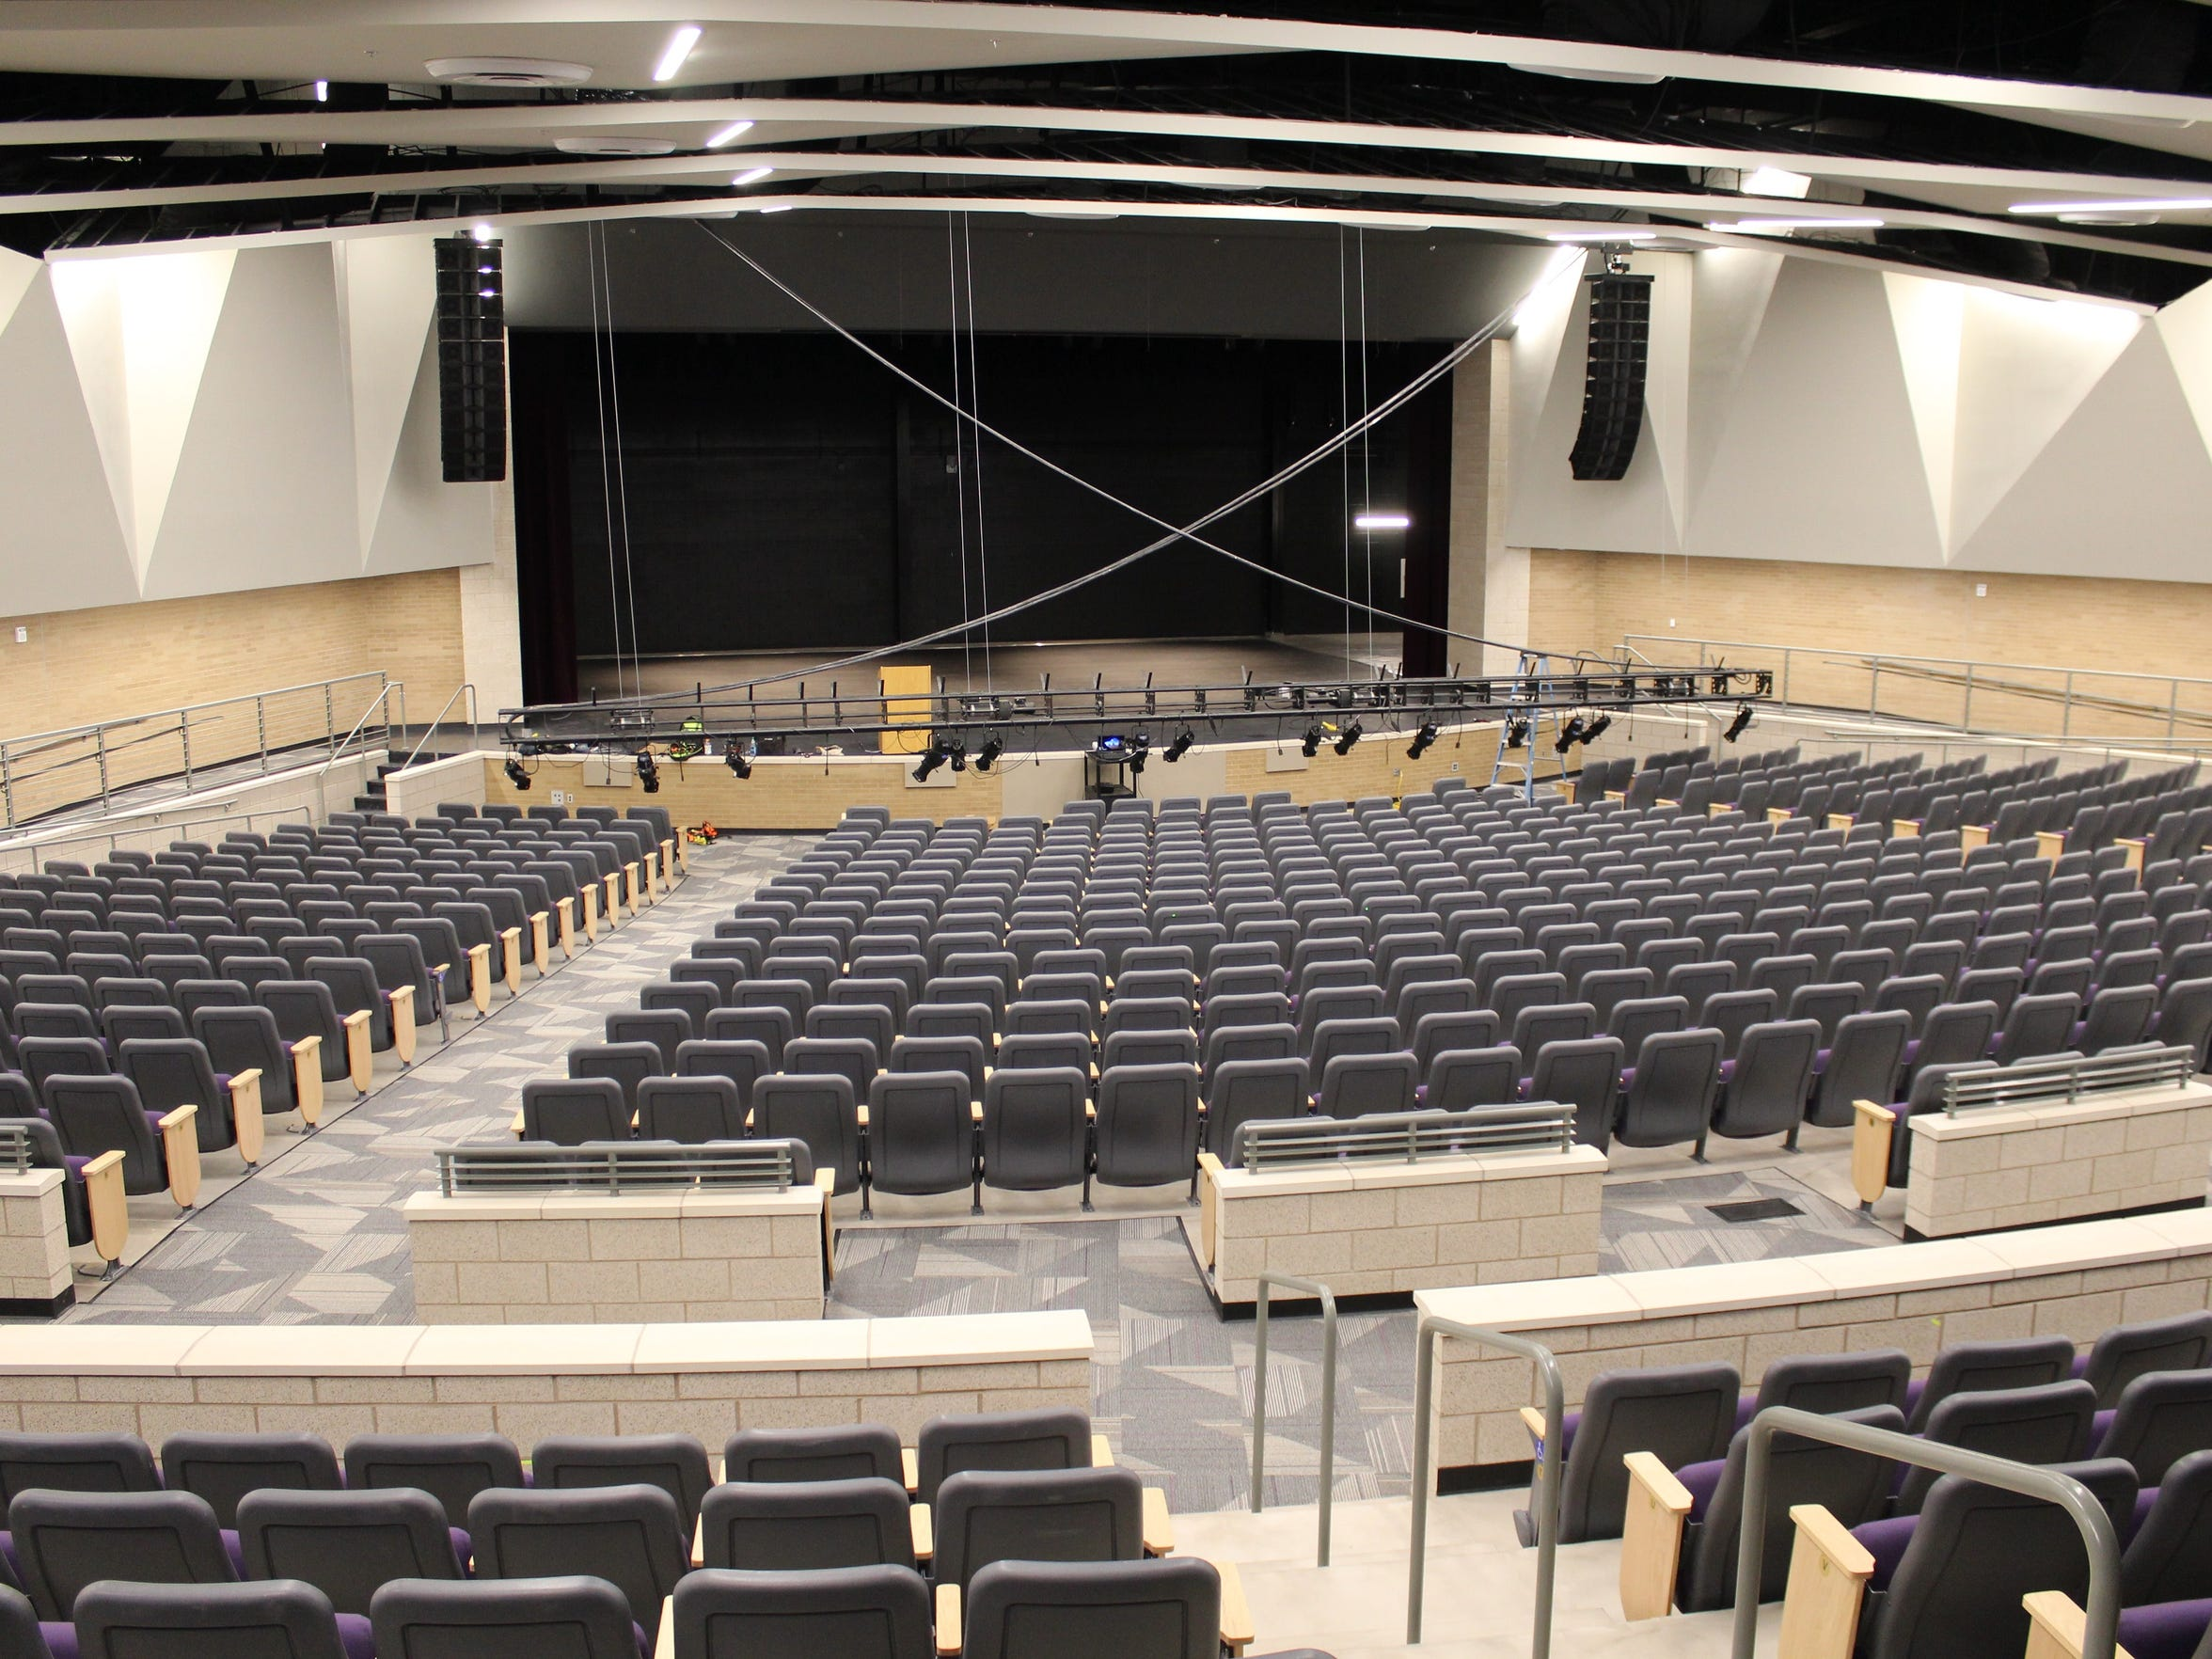 The news Wylie ISD performing arts center will seat about 1,000, and features LED lights that lower to the floor, eliminating the need for a catwalk. The facility include a blackbox theater, choir room and ample storage.